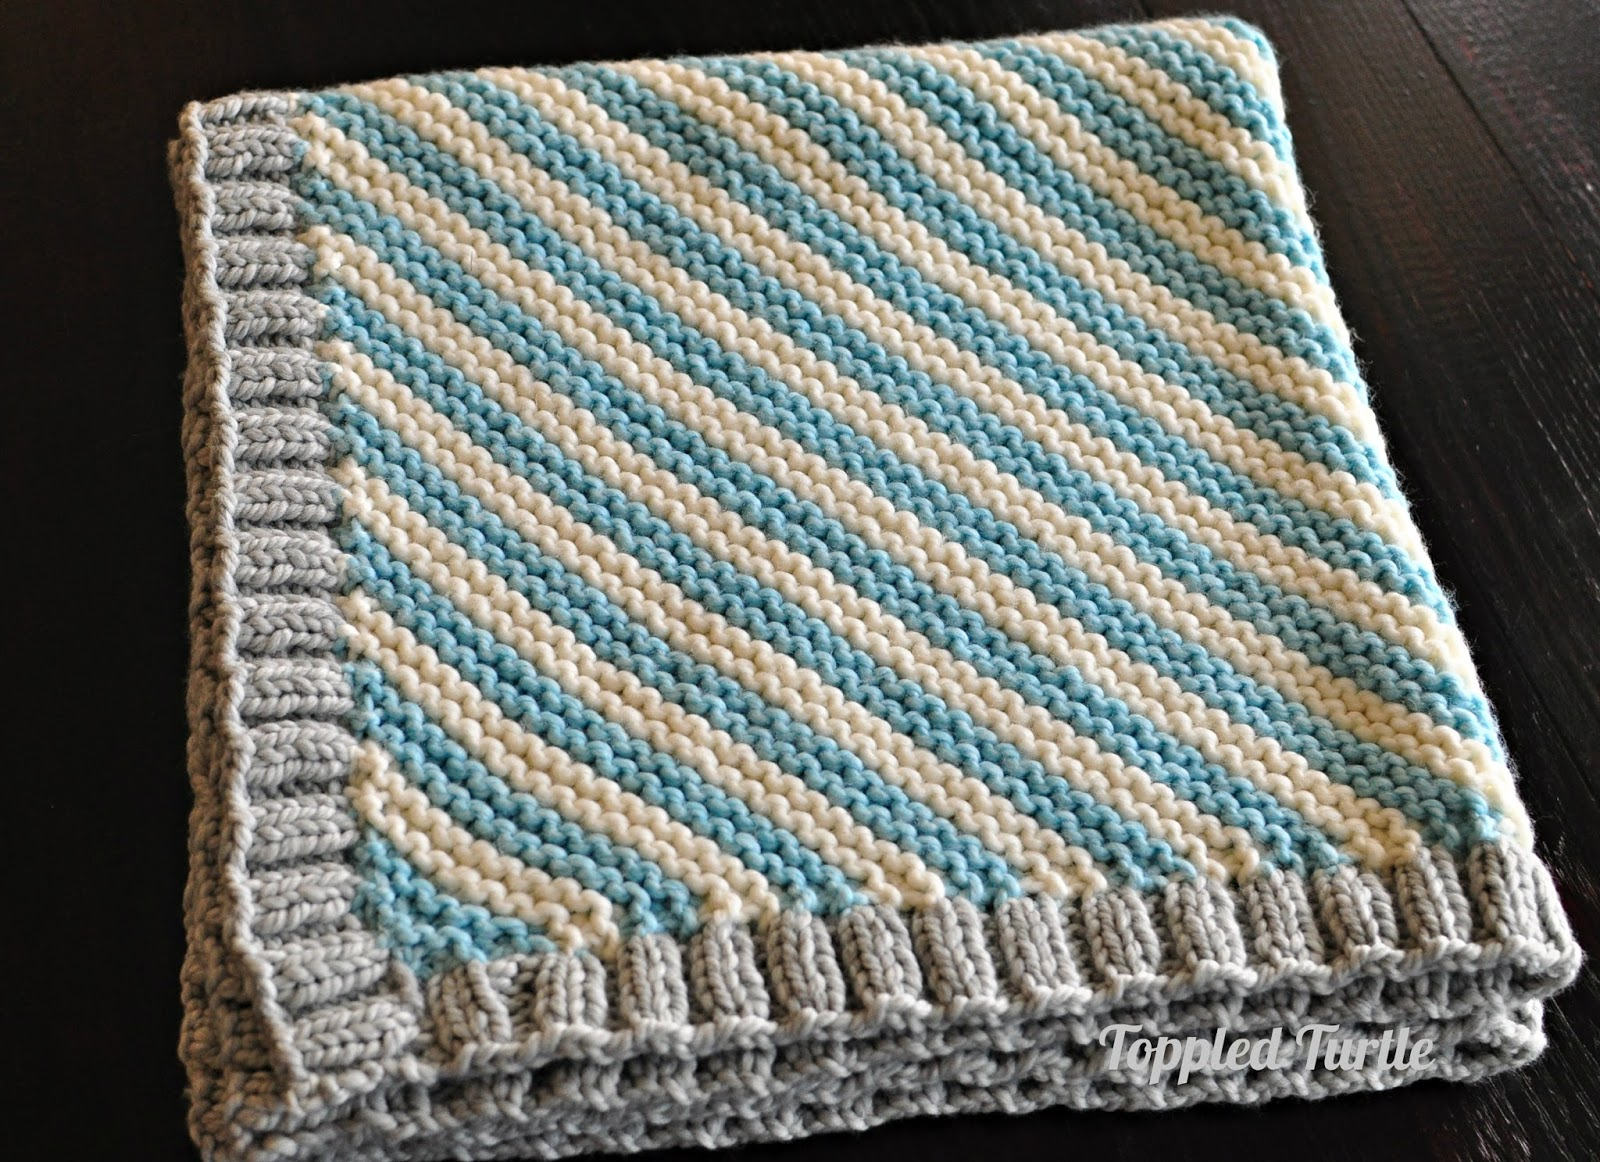 Free Knitting Patterns For Striped Baby Blankets : Toppled Turtle: Bias Striped Knit Baby Blanket - Free Pattern